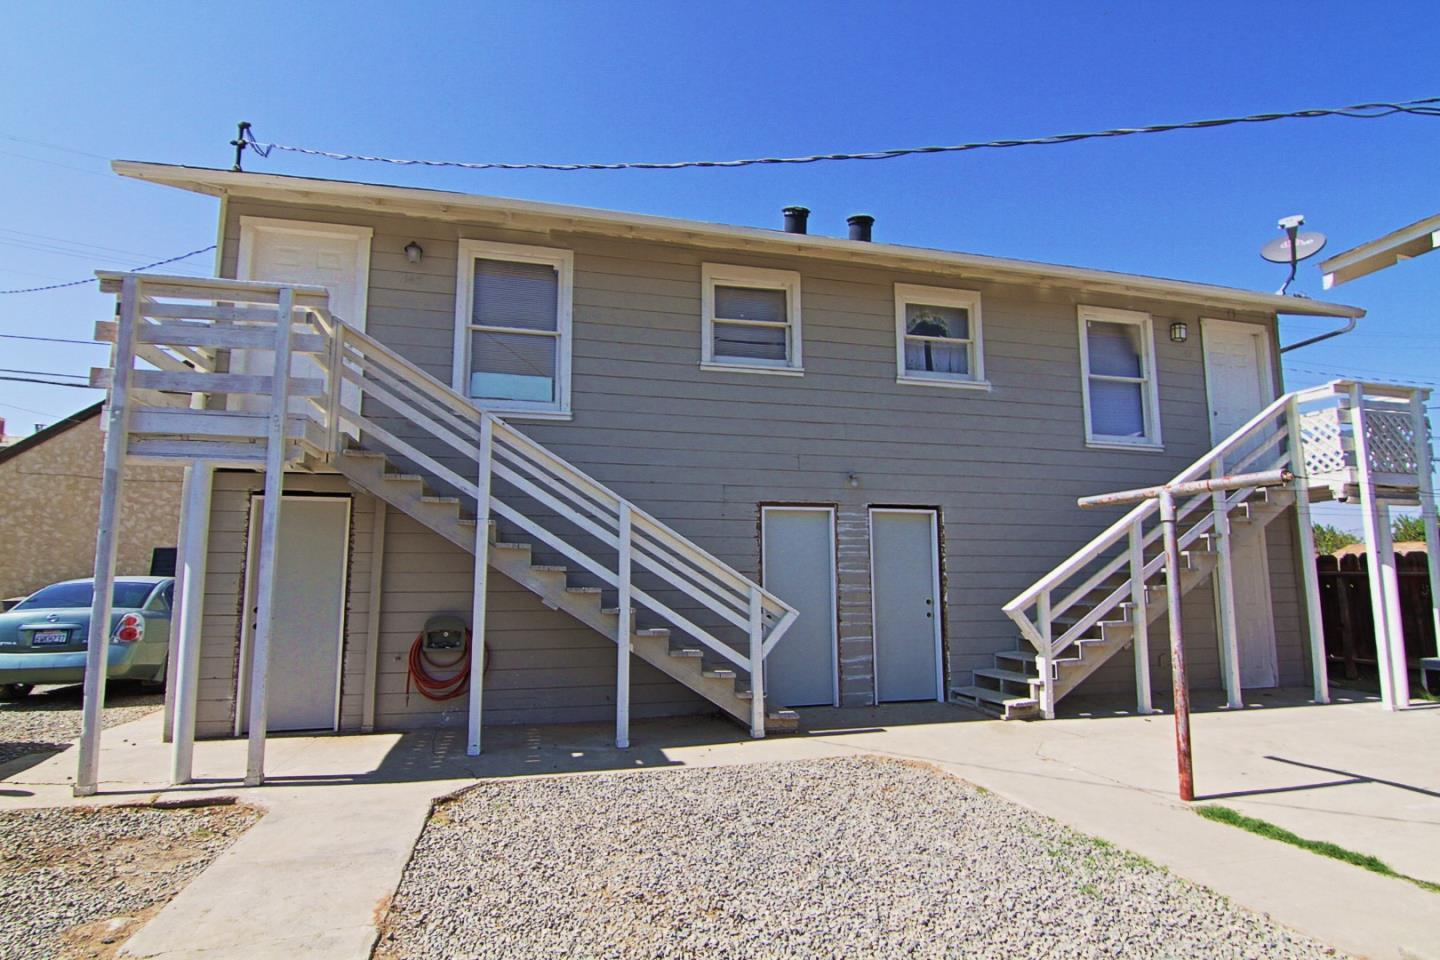 Multi-Family Home for Sale at 143 Ivy Street 143 Ivy Street Coalinga, California 93210 United States